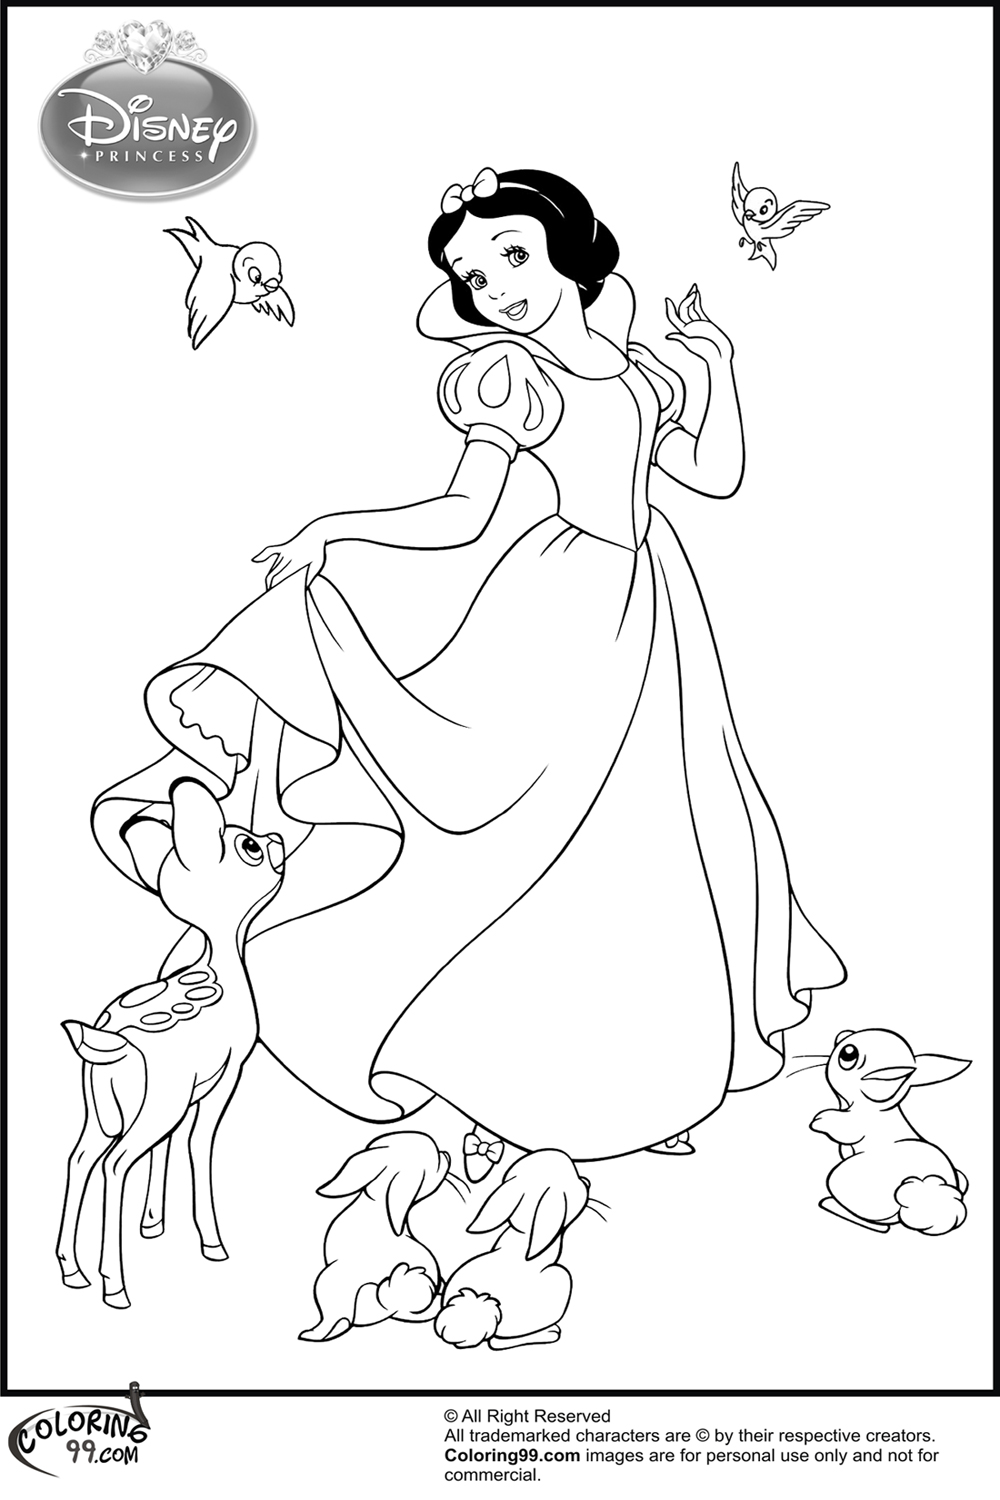 white coloring book pages - photo#46